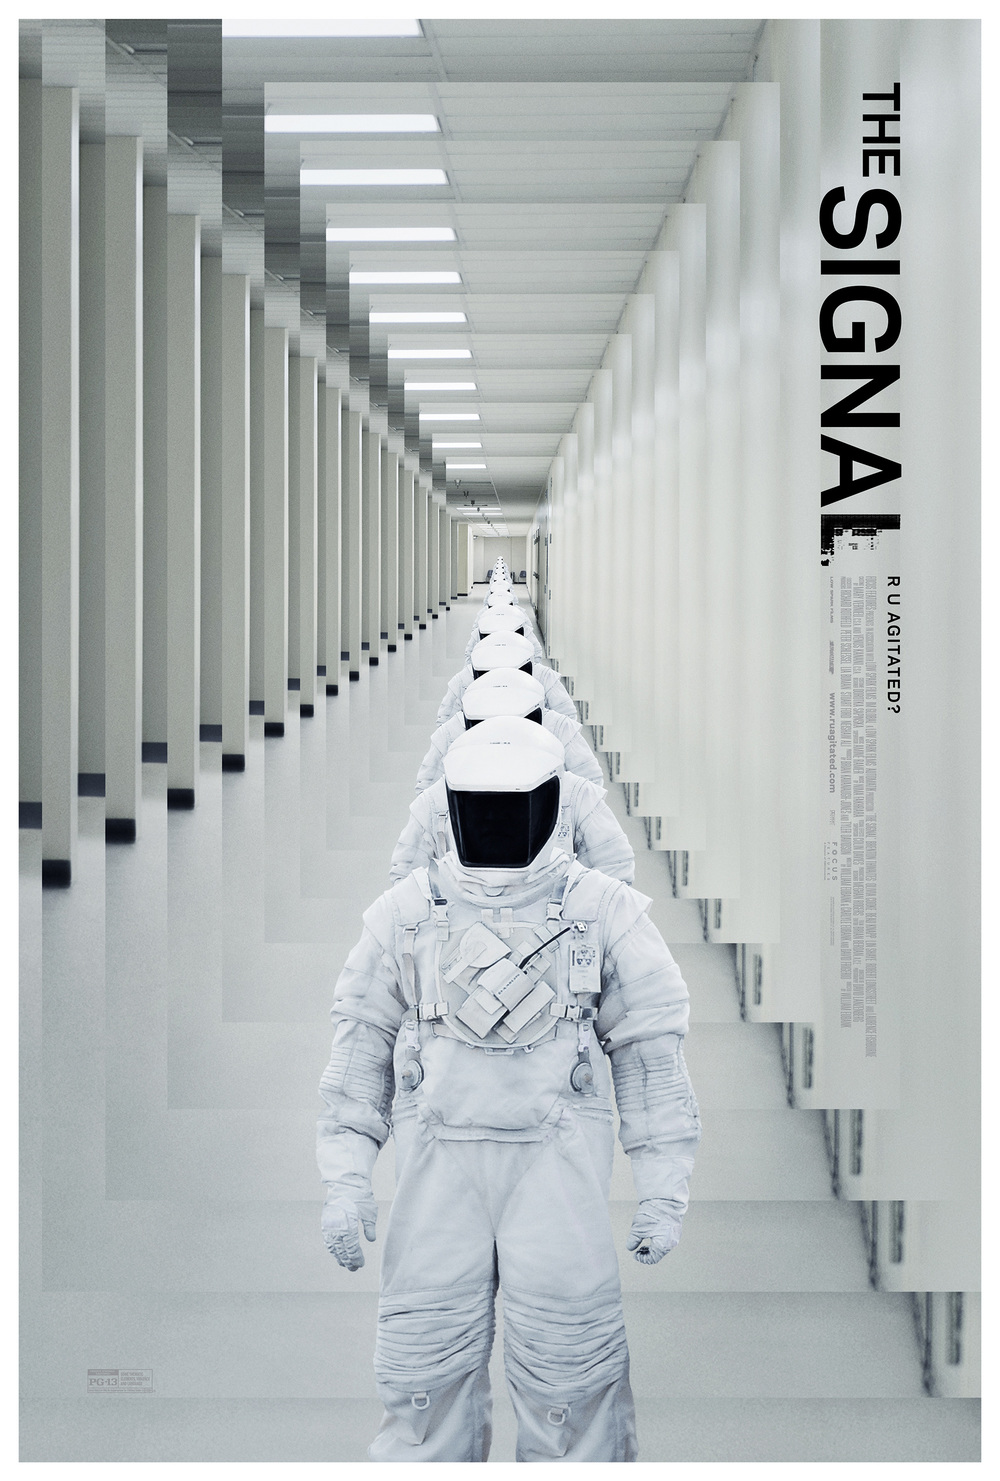 poster-for-the-indie-sci-fi-thriller-the-signal